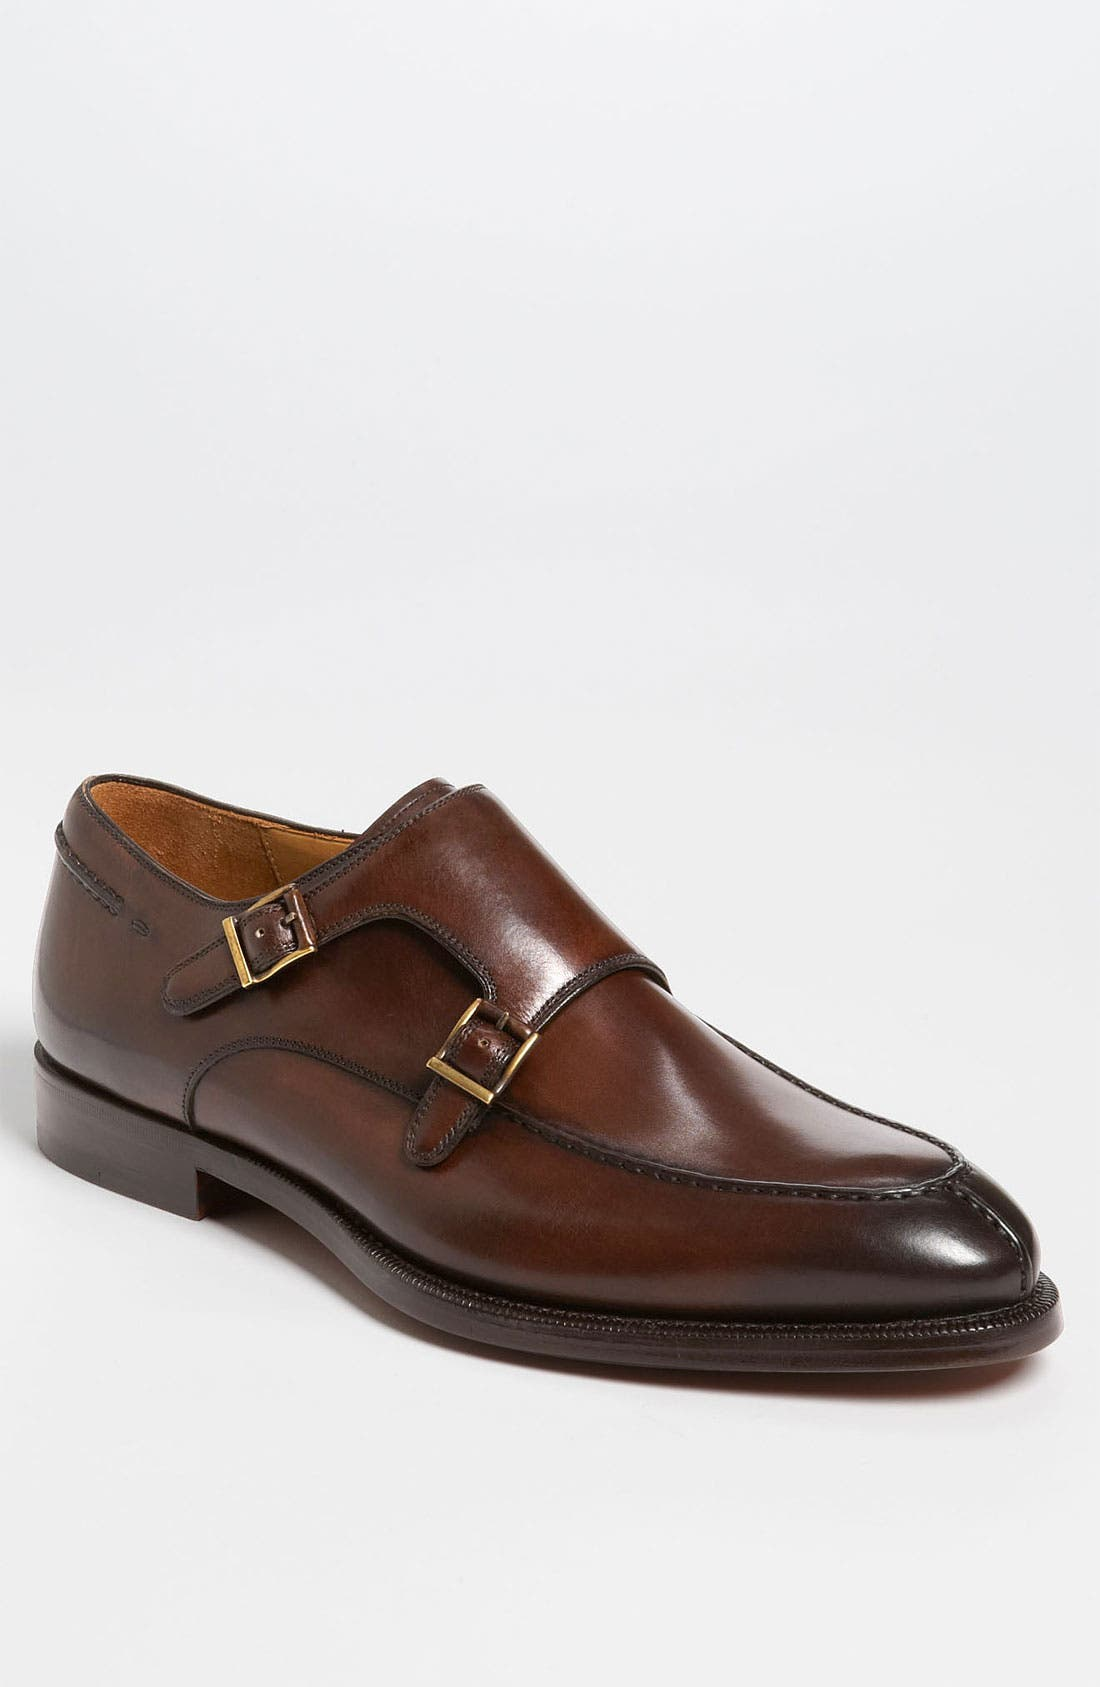 Alternate Image 1 Selected - Magnanni 'Turia' Double Monk Strap Slip-On